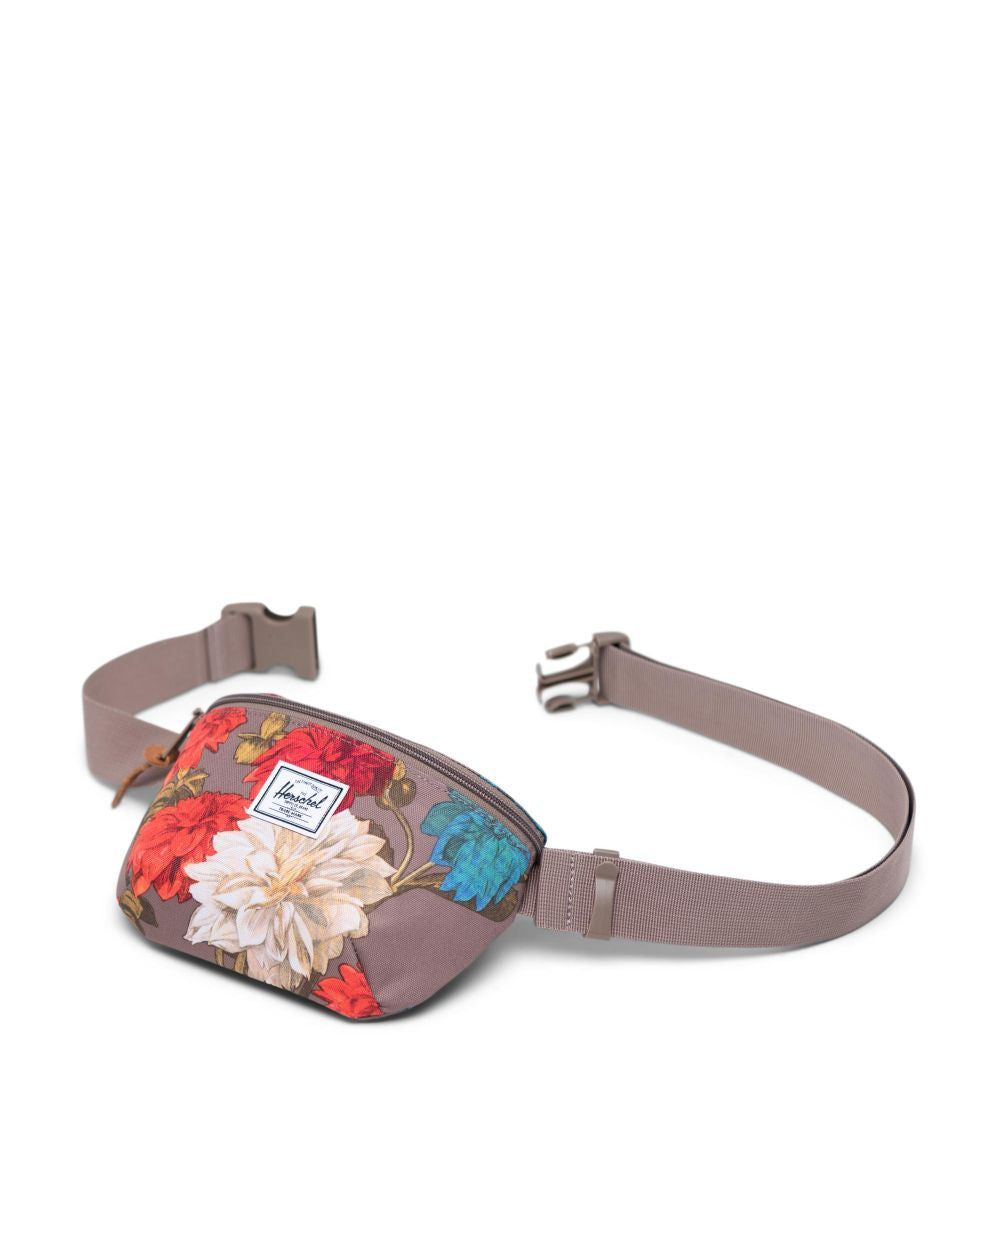 FOURTEEN HIP PACK - VINTAGE FLORAL PINE BARK